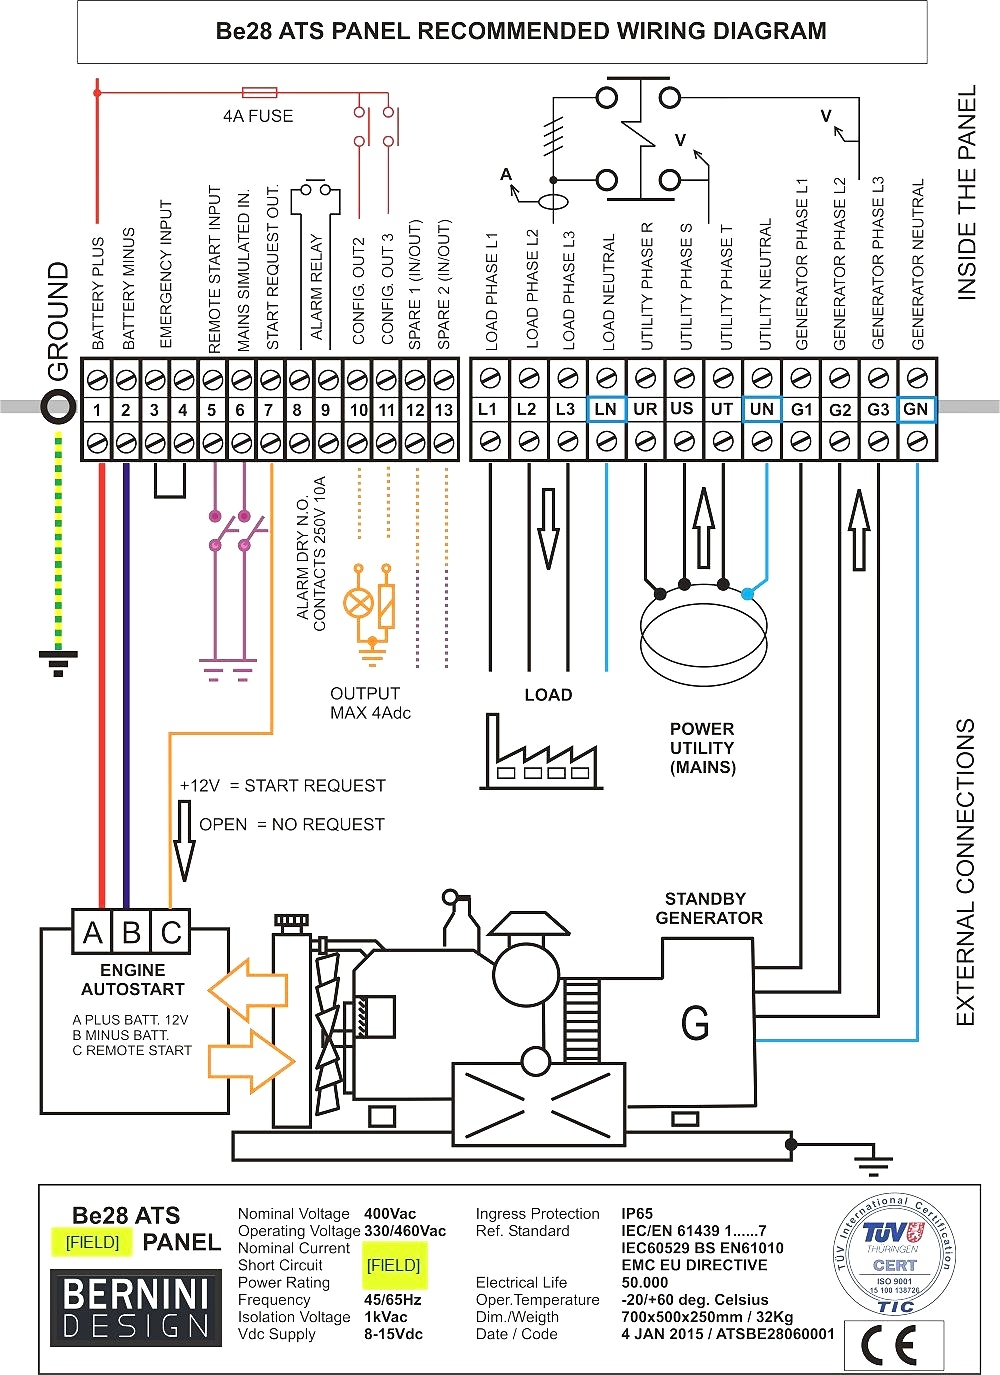 onan transfer switch wiring diagram to 15000 today wiring diagramonan ats wiring diagrams 1 wiring diagram source briggs and stratton transfer switch wiring diagram onan transfer switch wiring diagram to 15000